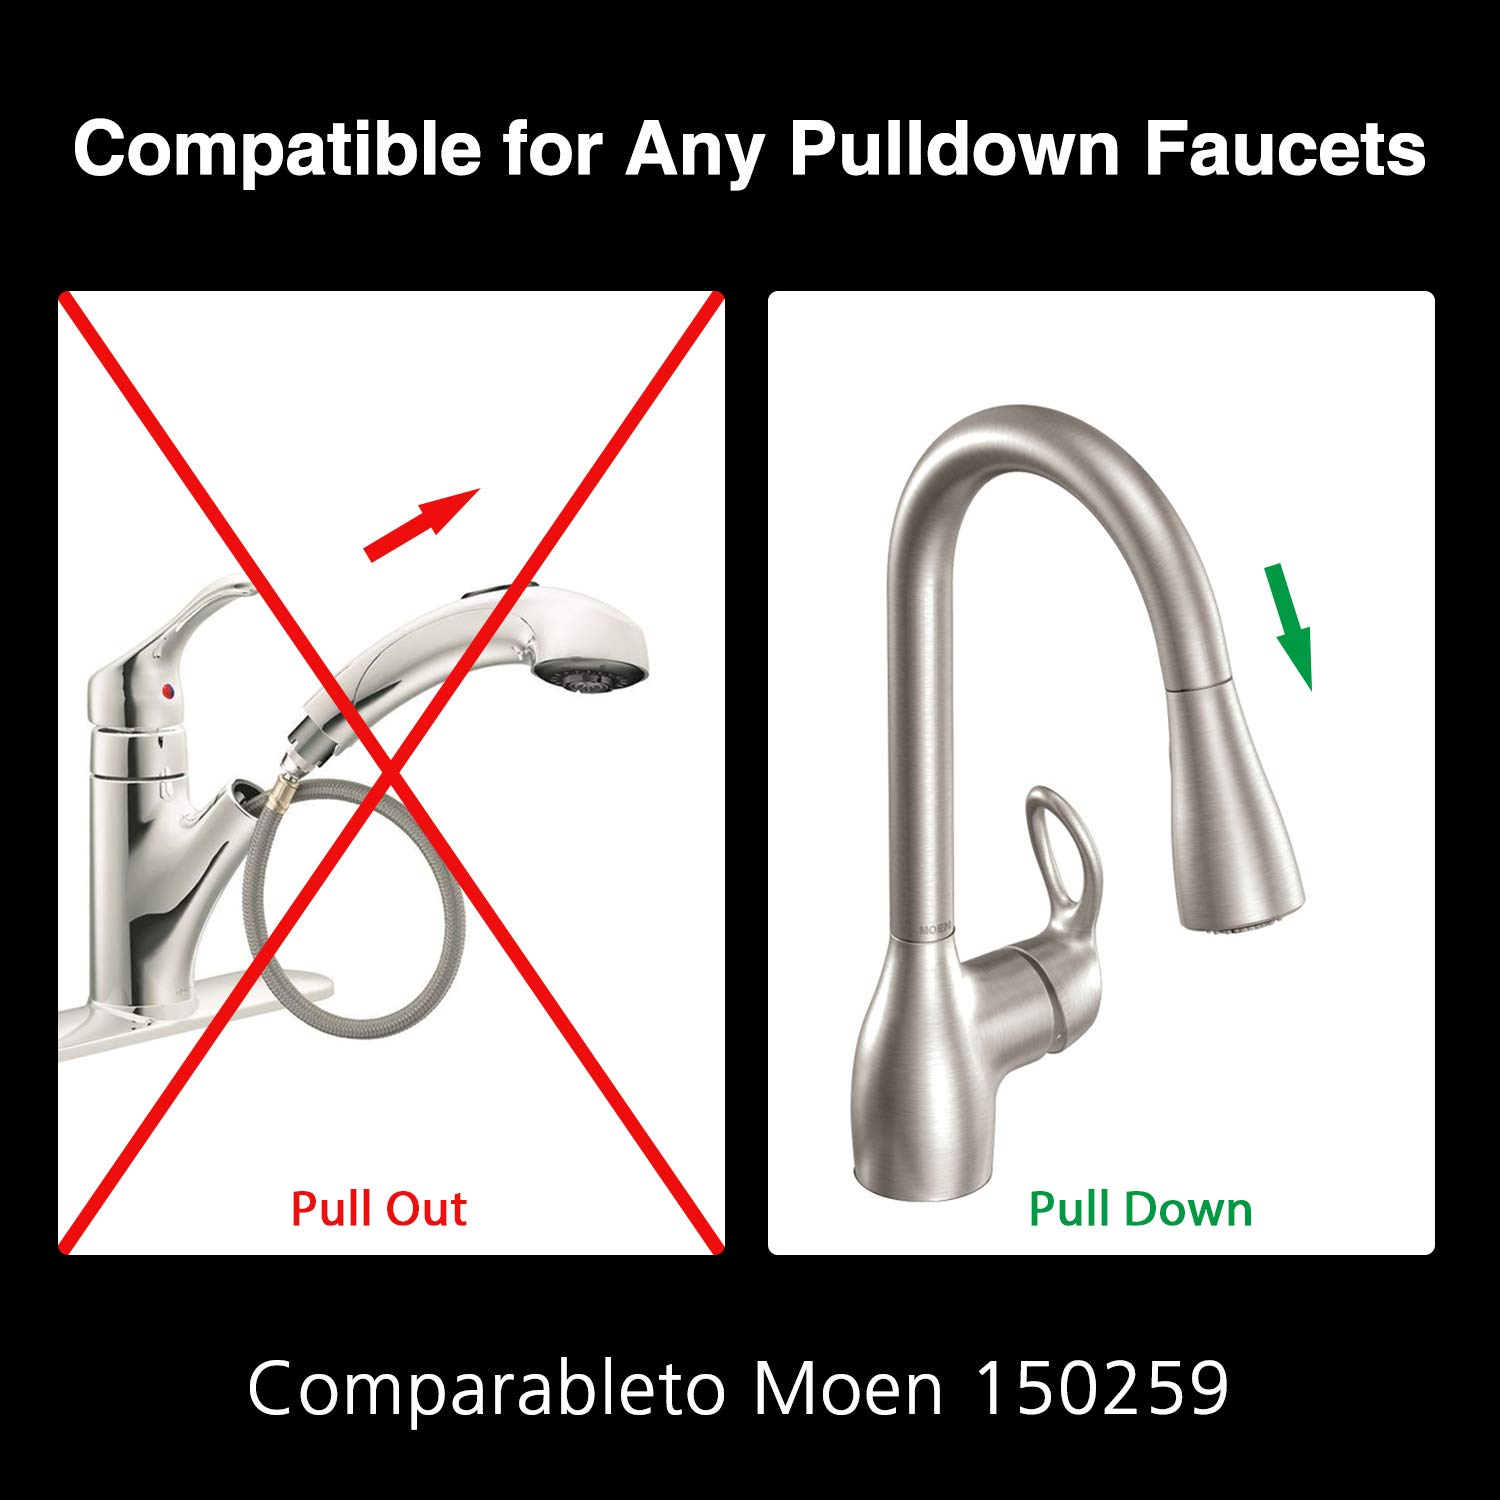 With The Hose Part Number 187108 Fits In Moen 150259 Replacement Hose Kit For Moen Pulldown Style Kitchen Faucets Kitchen Fixtures Tools Home Improvement Fcteutonia05 De